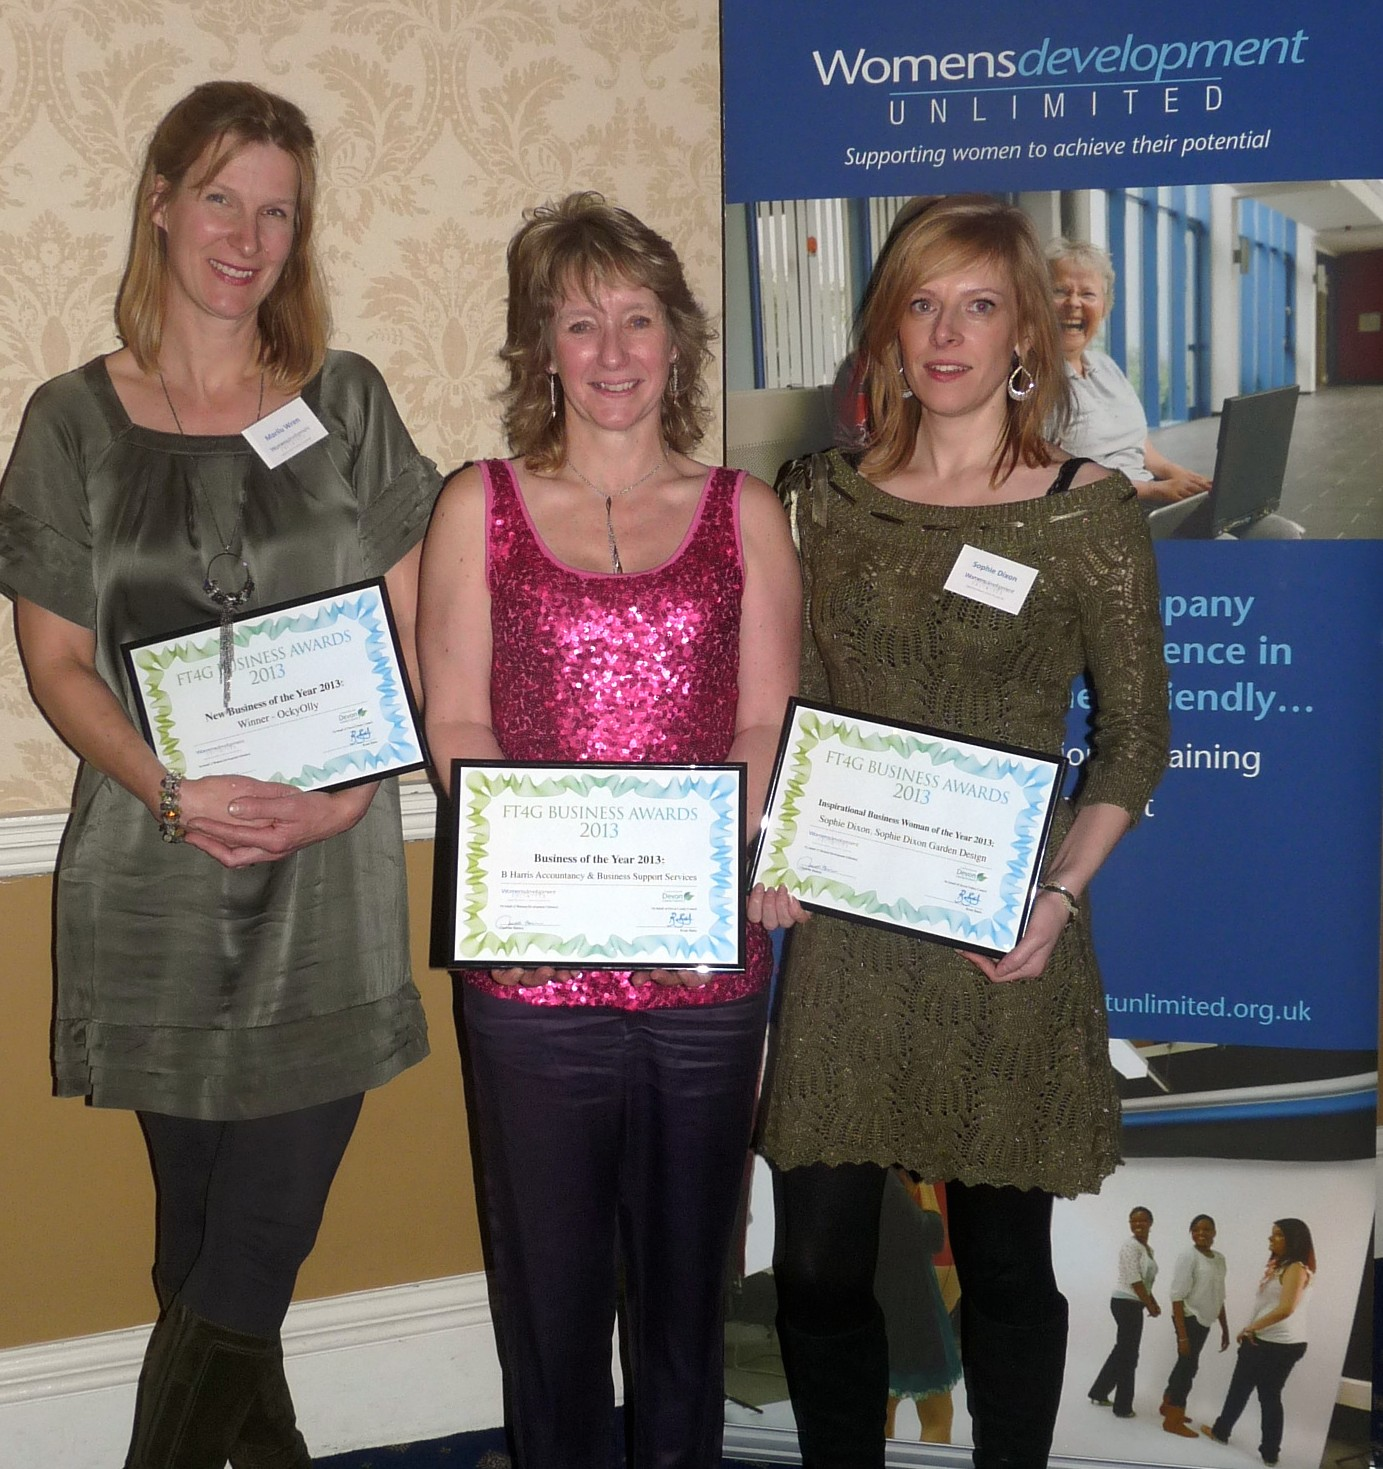 Sophie receiving her award along with two other winners, at the Women's Development Unlimited ceremony and dinner.